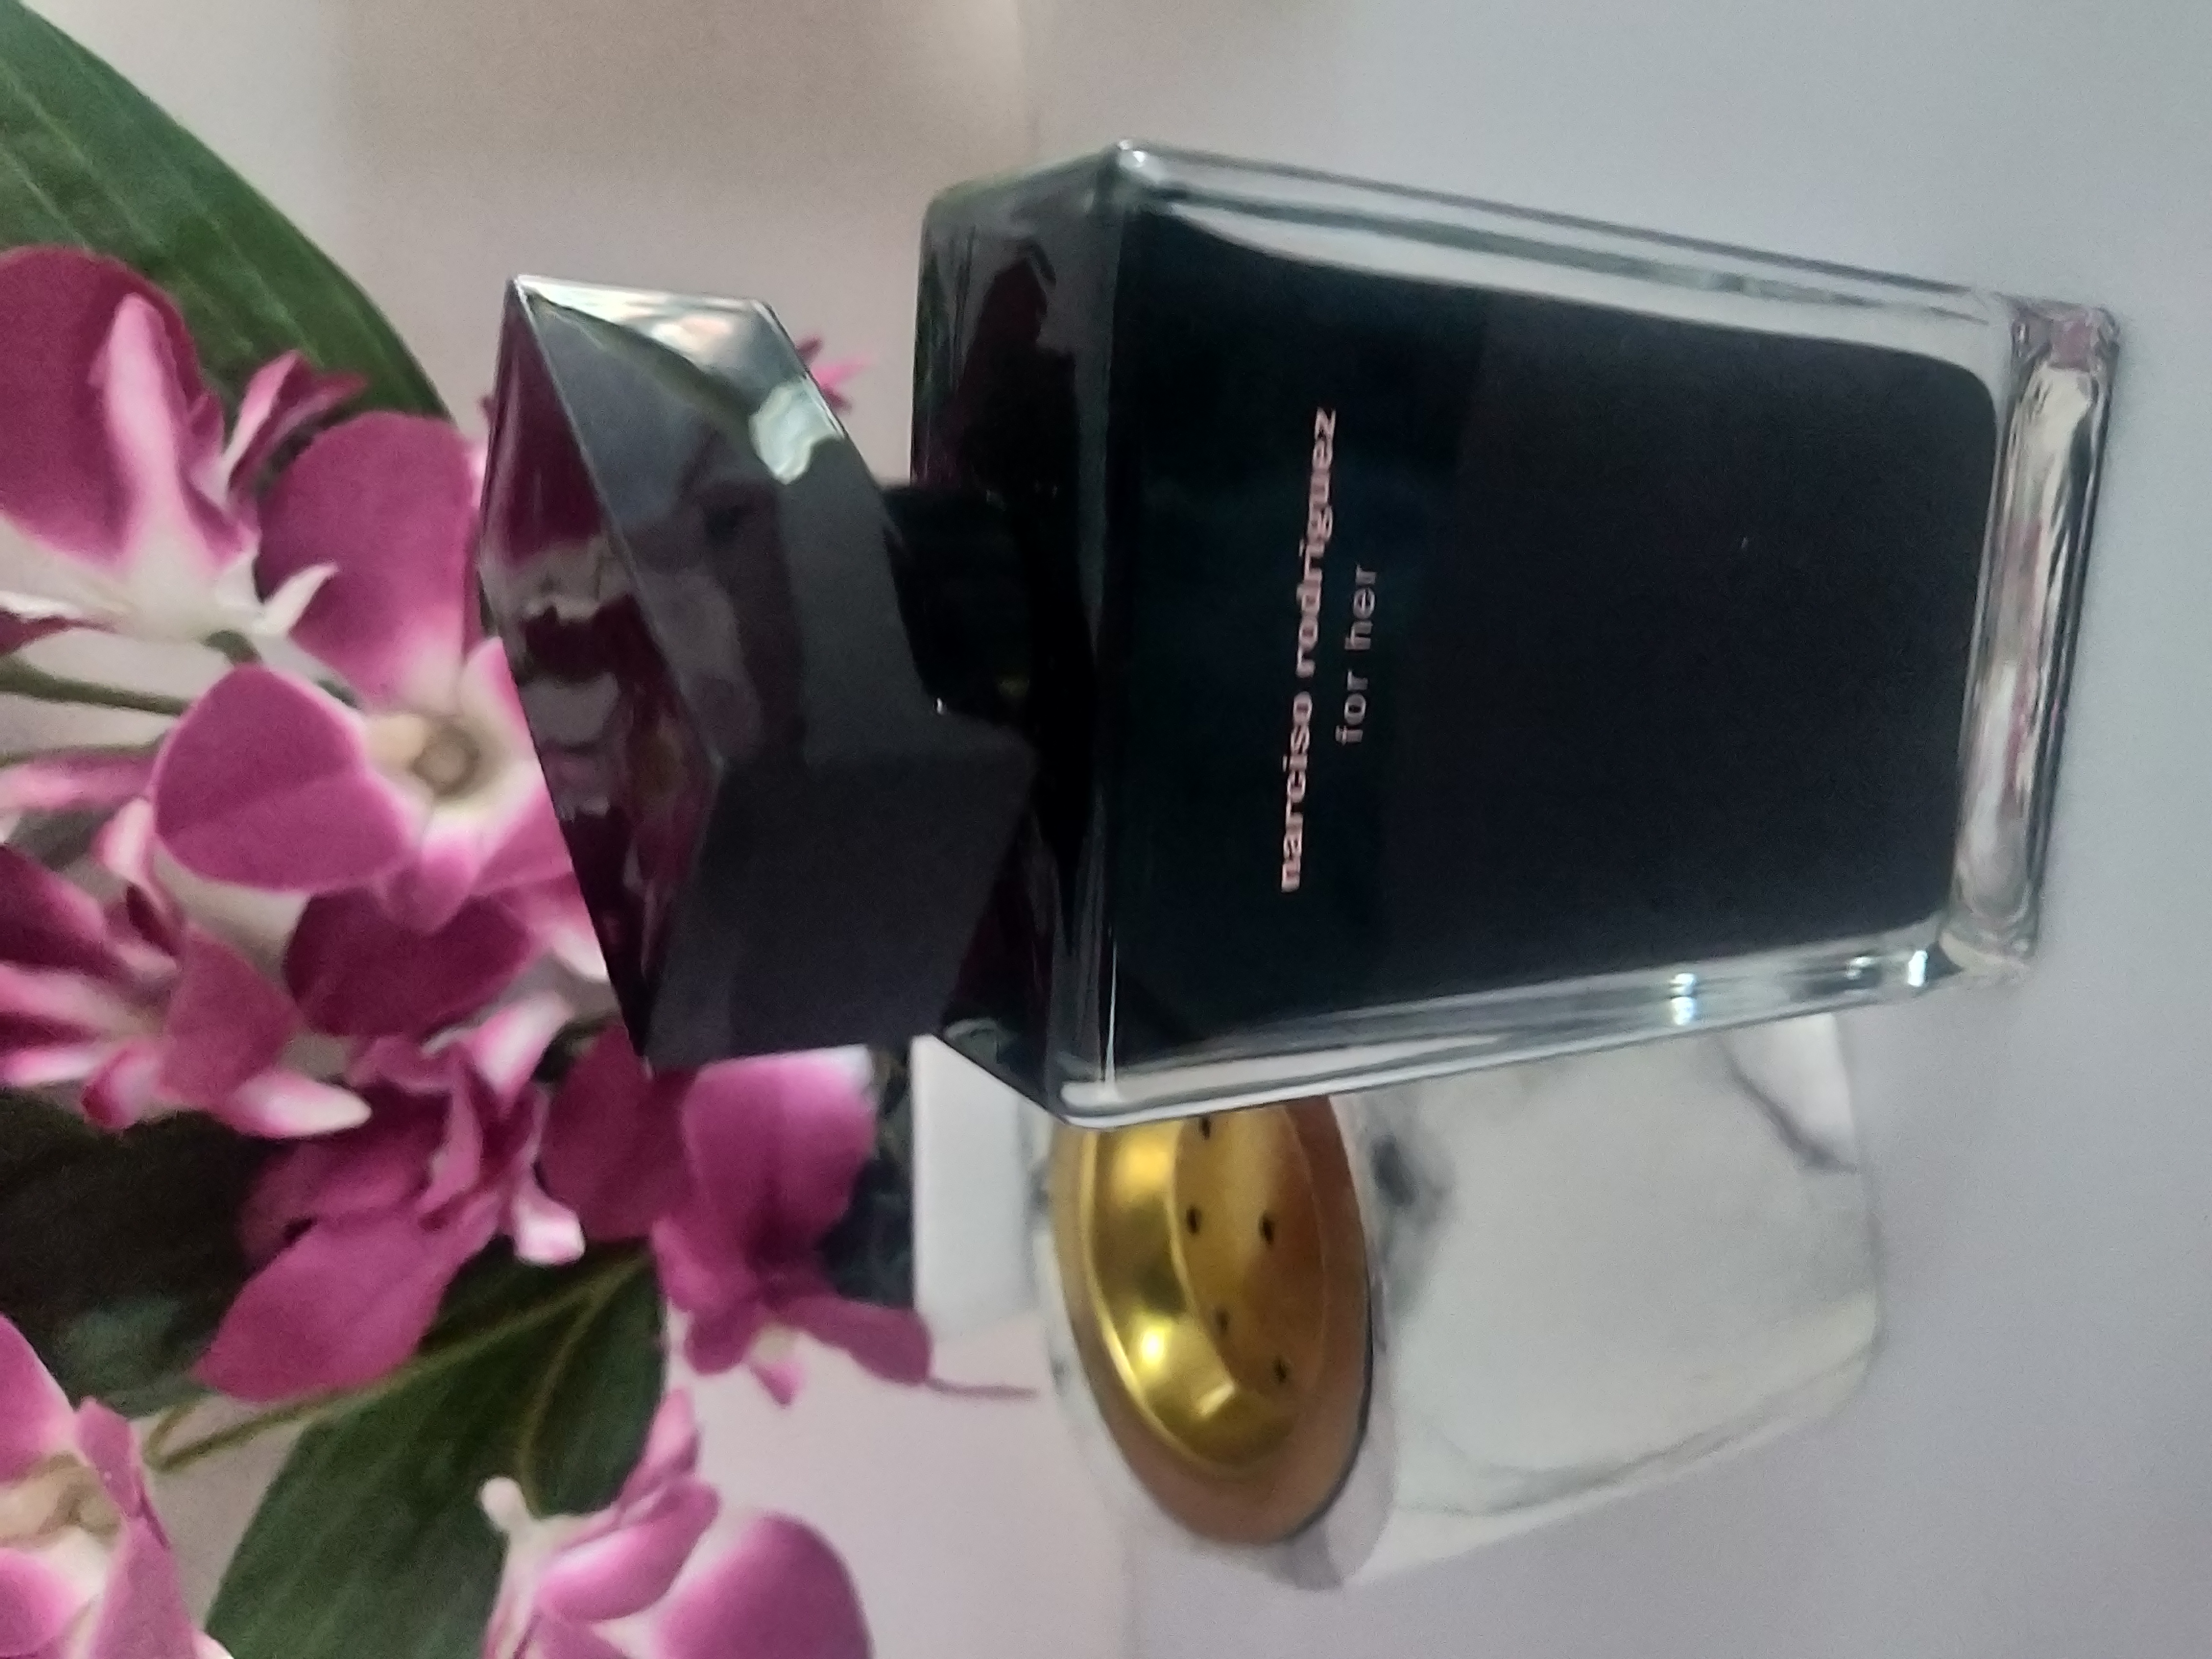 Narciso Rodriguez For Her Eau De Toilette Spray-Cast a spell with narciso Rodriguez!-By apekshap